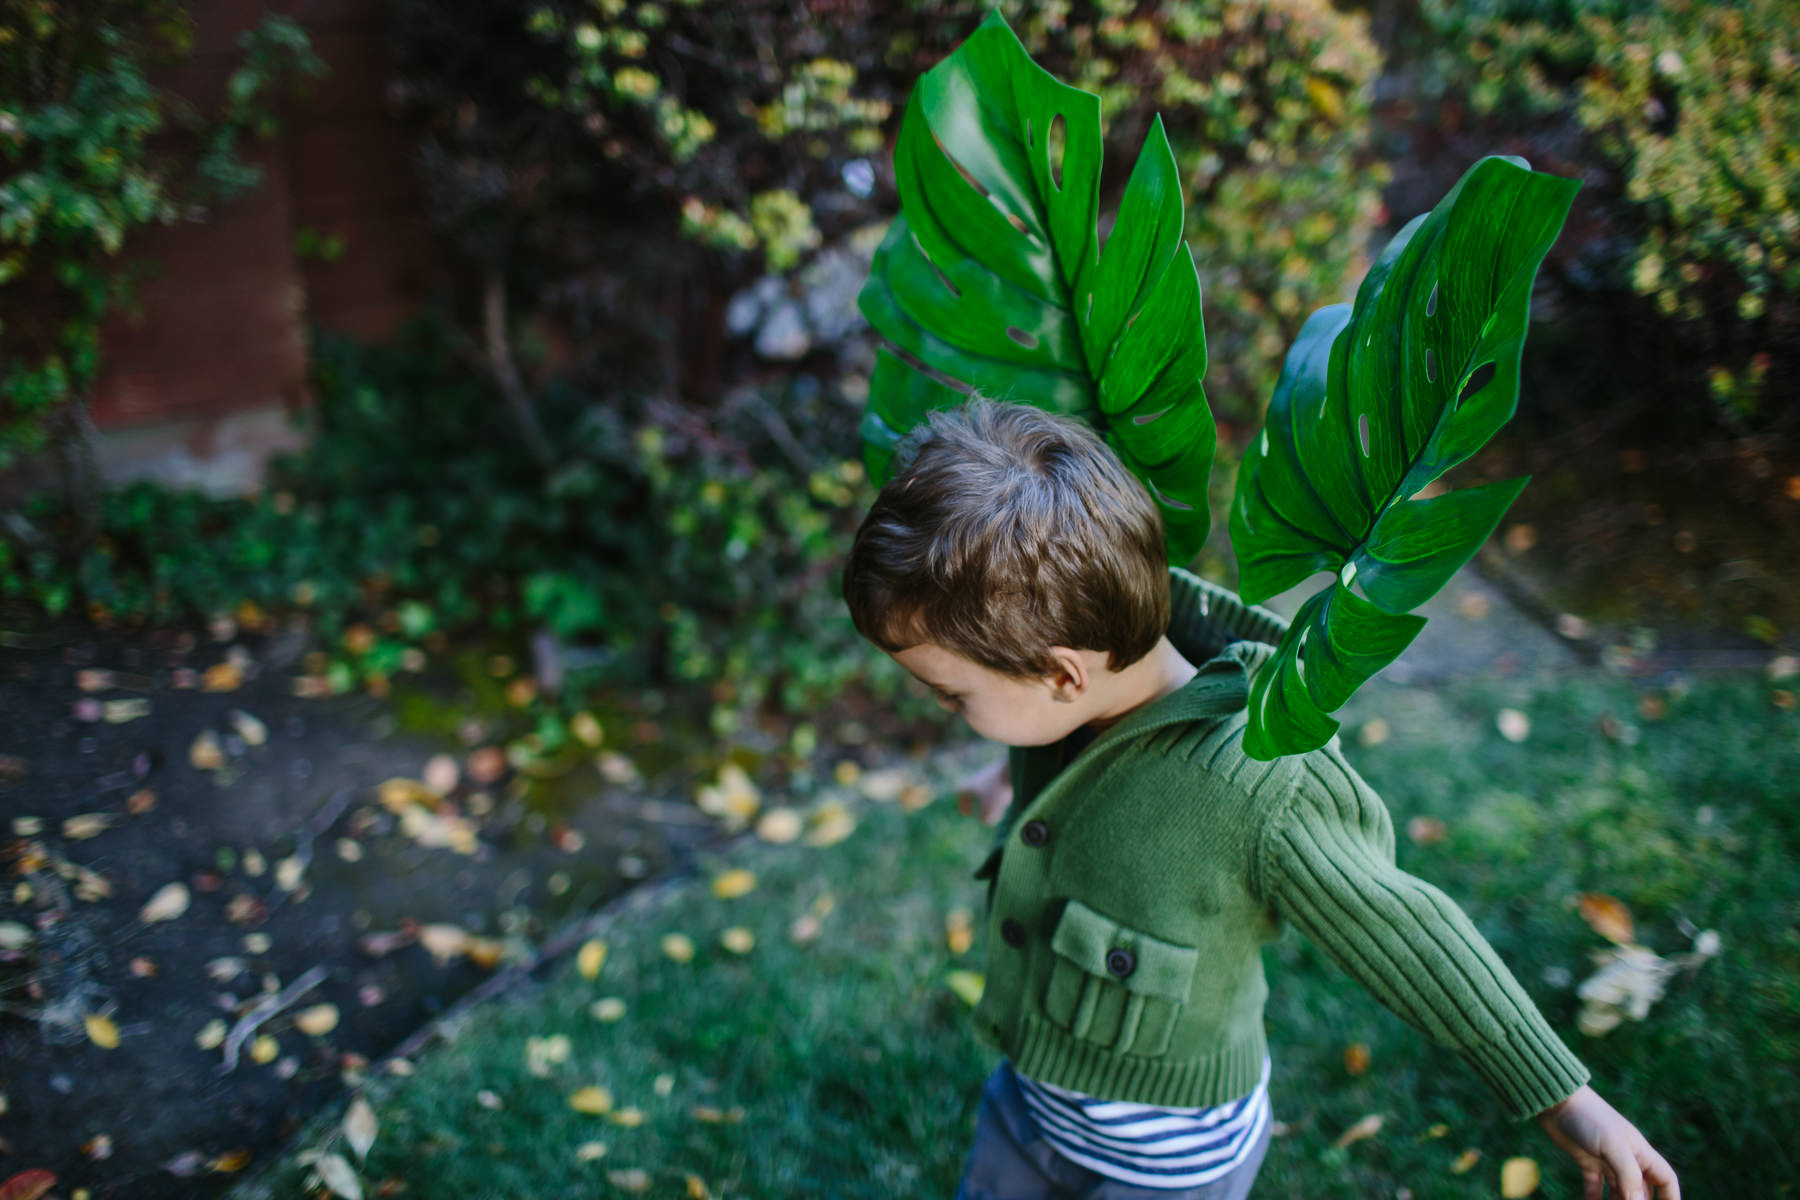 the-curiosity-project-blog-halloween-plant-lady-costumes (8 of 13).jpg